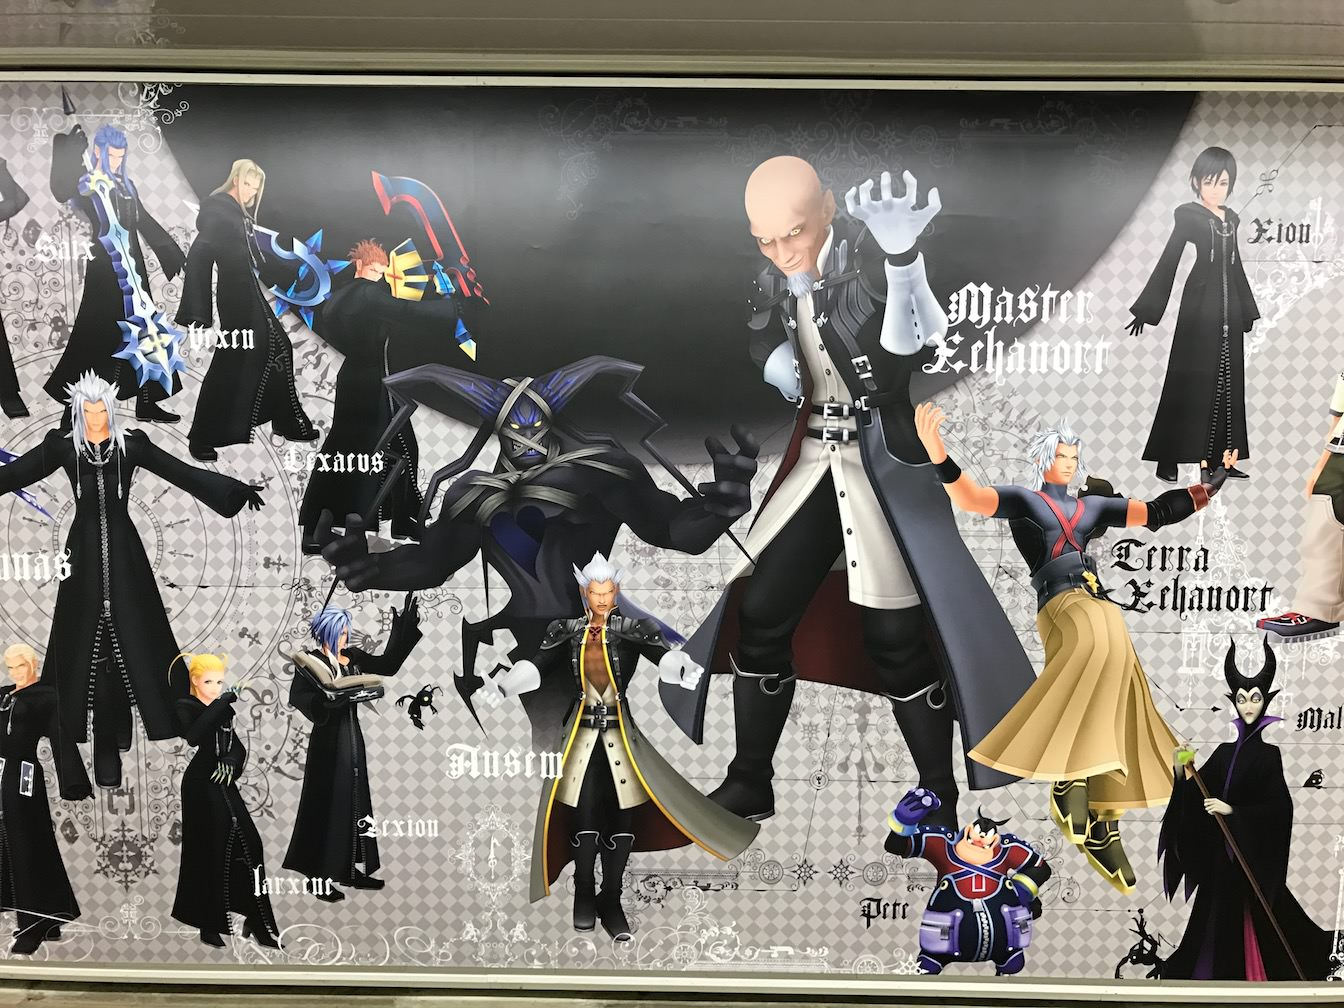 Kingdomhearts 15th anniversary exhibition at shinjuku 13